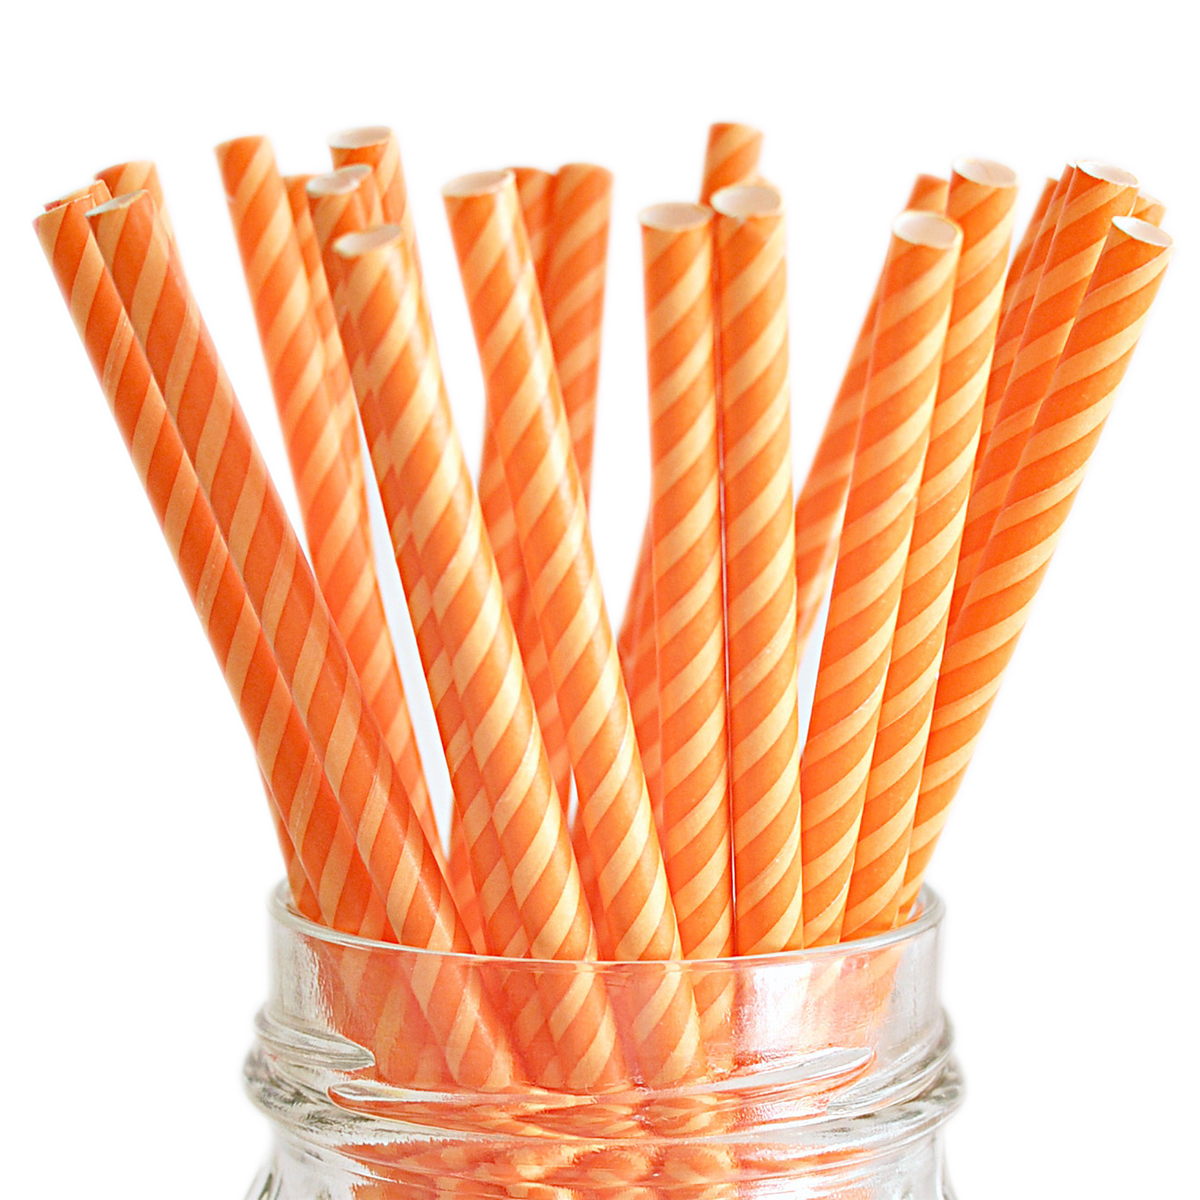 Queen&Co Stylish Stix Juicy Stripes OrangCrsh 25pc